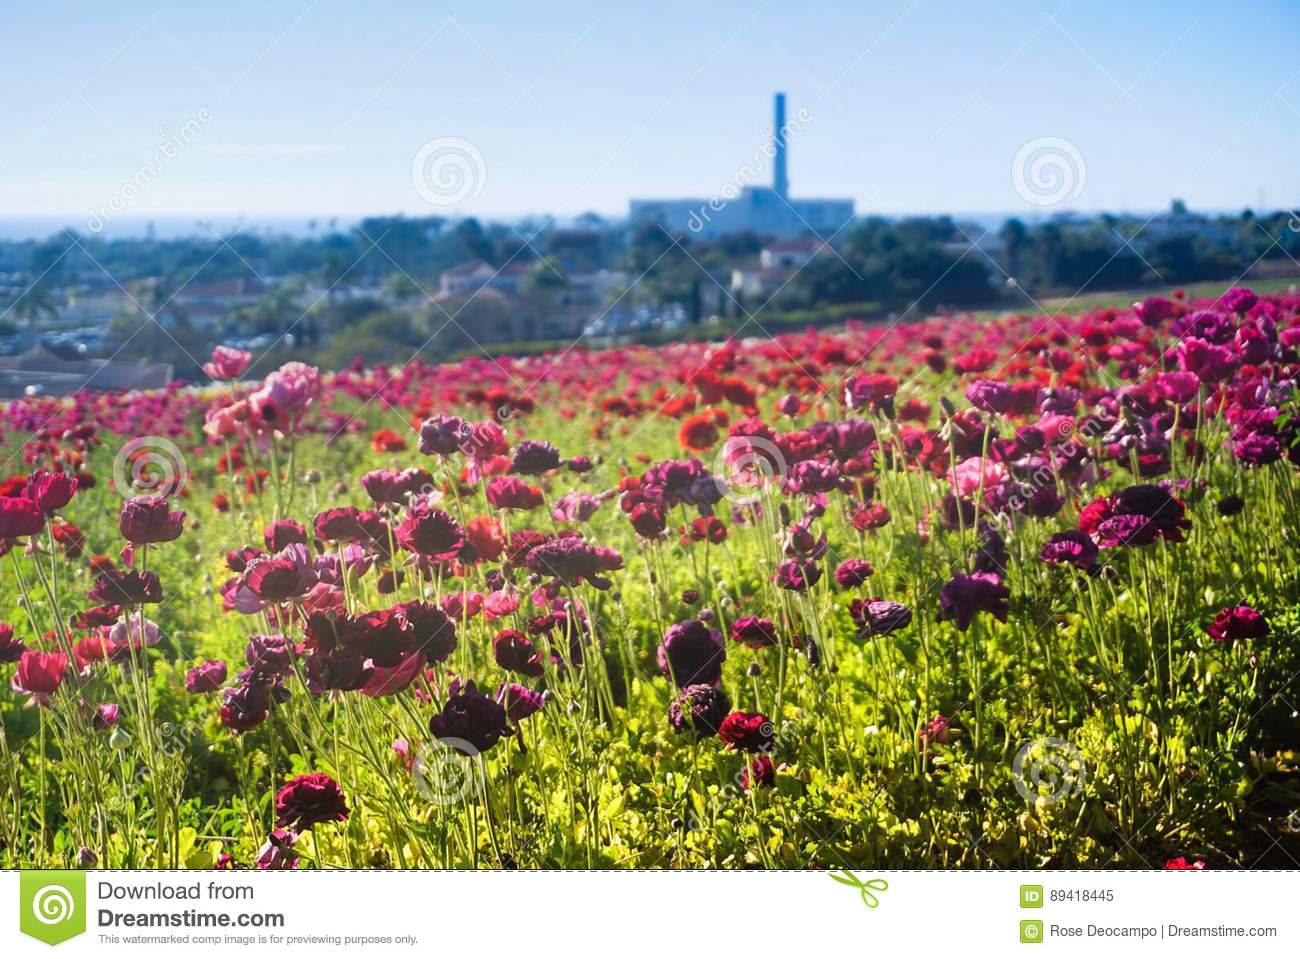 Download Flower Fields In Carlsbad Stock Image. Image Of Garden   89418445